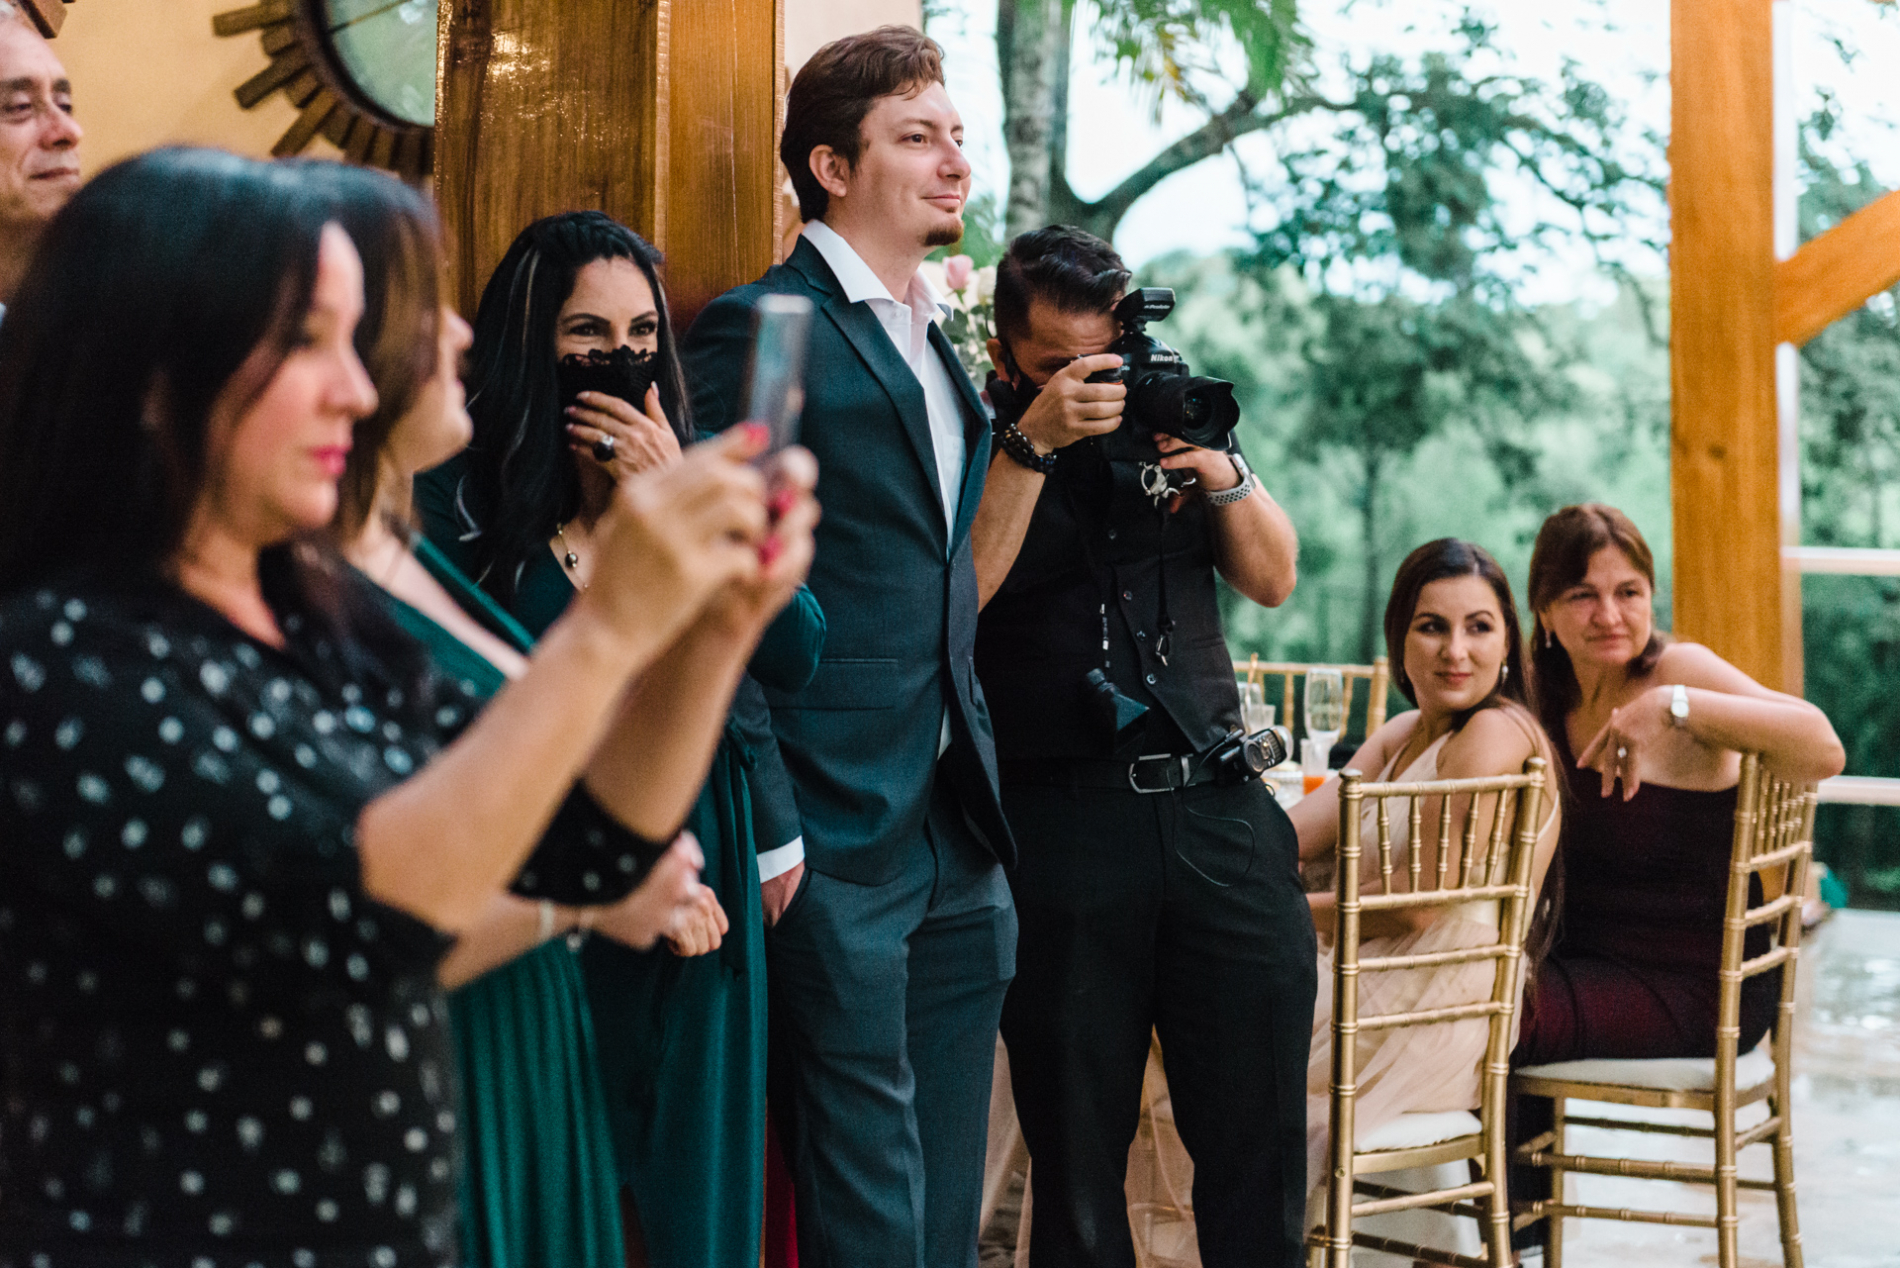 San Jose-CR wedding photographer working an event with camera in Costa Rica